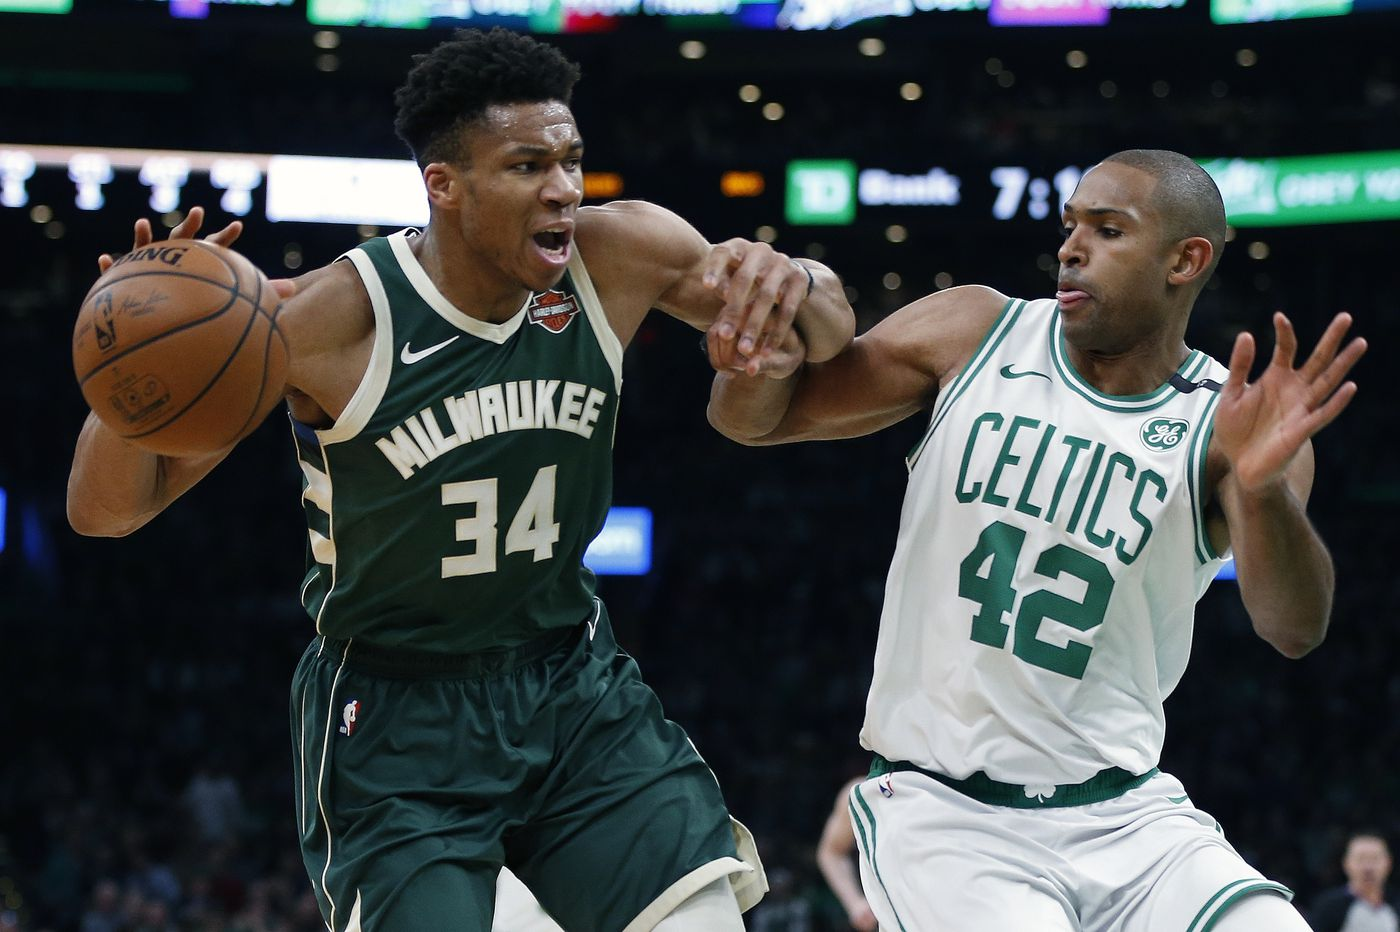 Celtics Notes: Kyrie Irving Reacts To Bucks' Thrashing Of Celtics